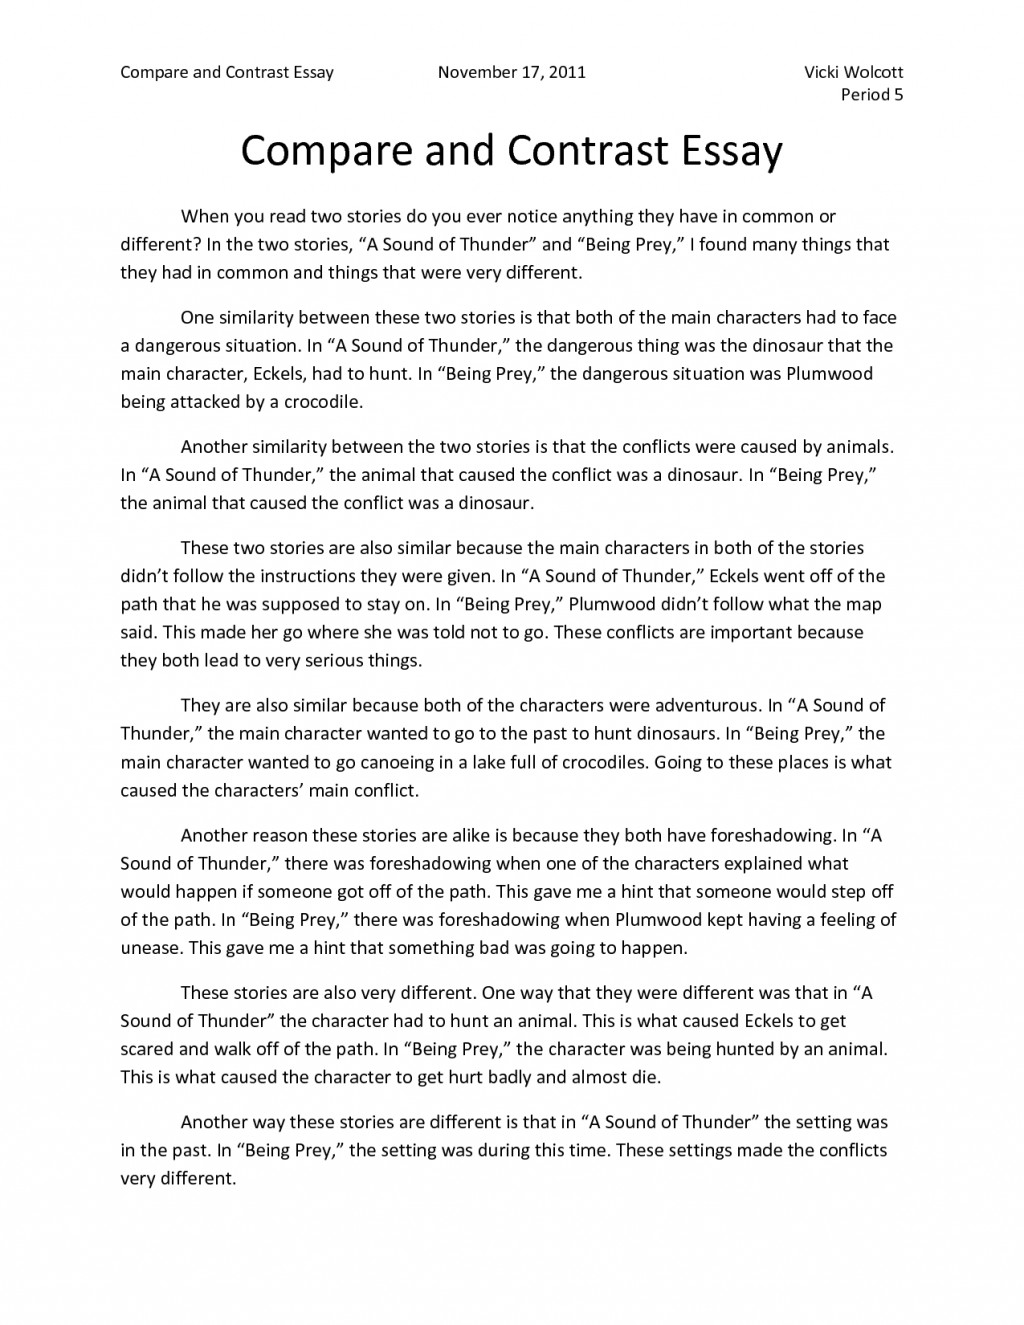 001 Perfect Essays Compare And Contrast Essay Introduction Example College Examples  Magnificent Comparison/contrast Sample Paragraph TemplateLarge